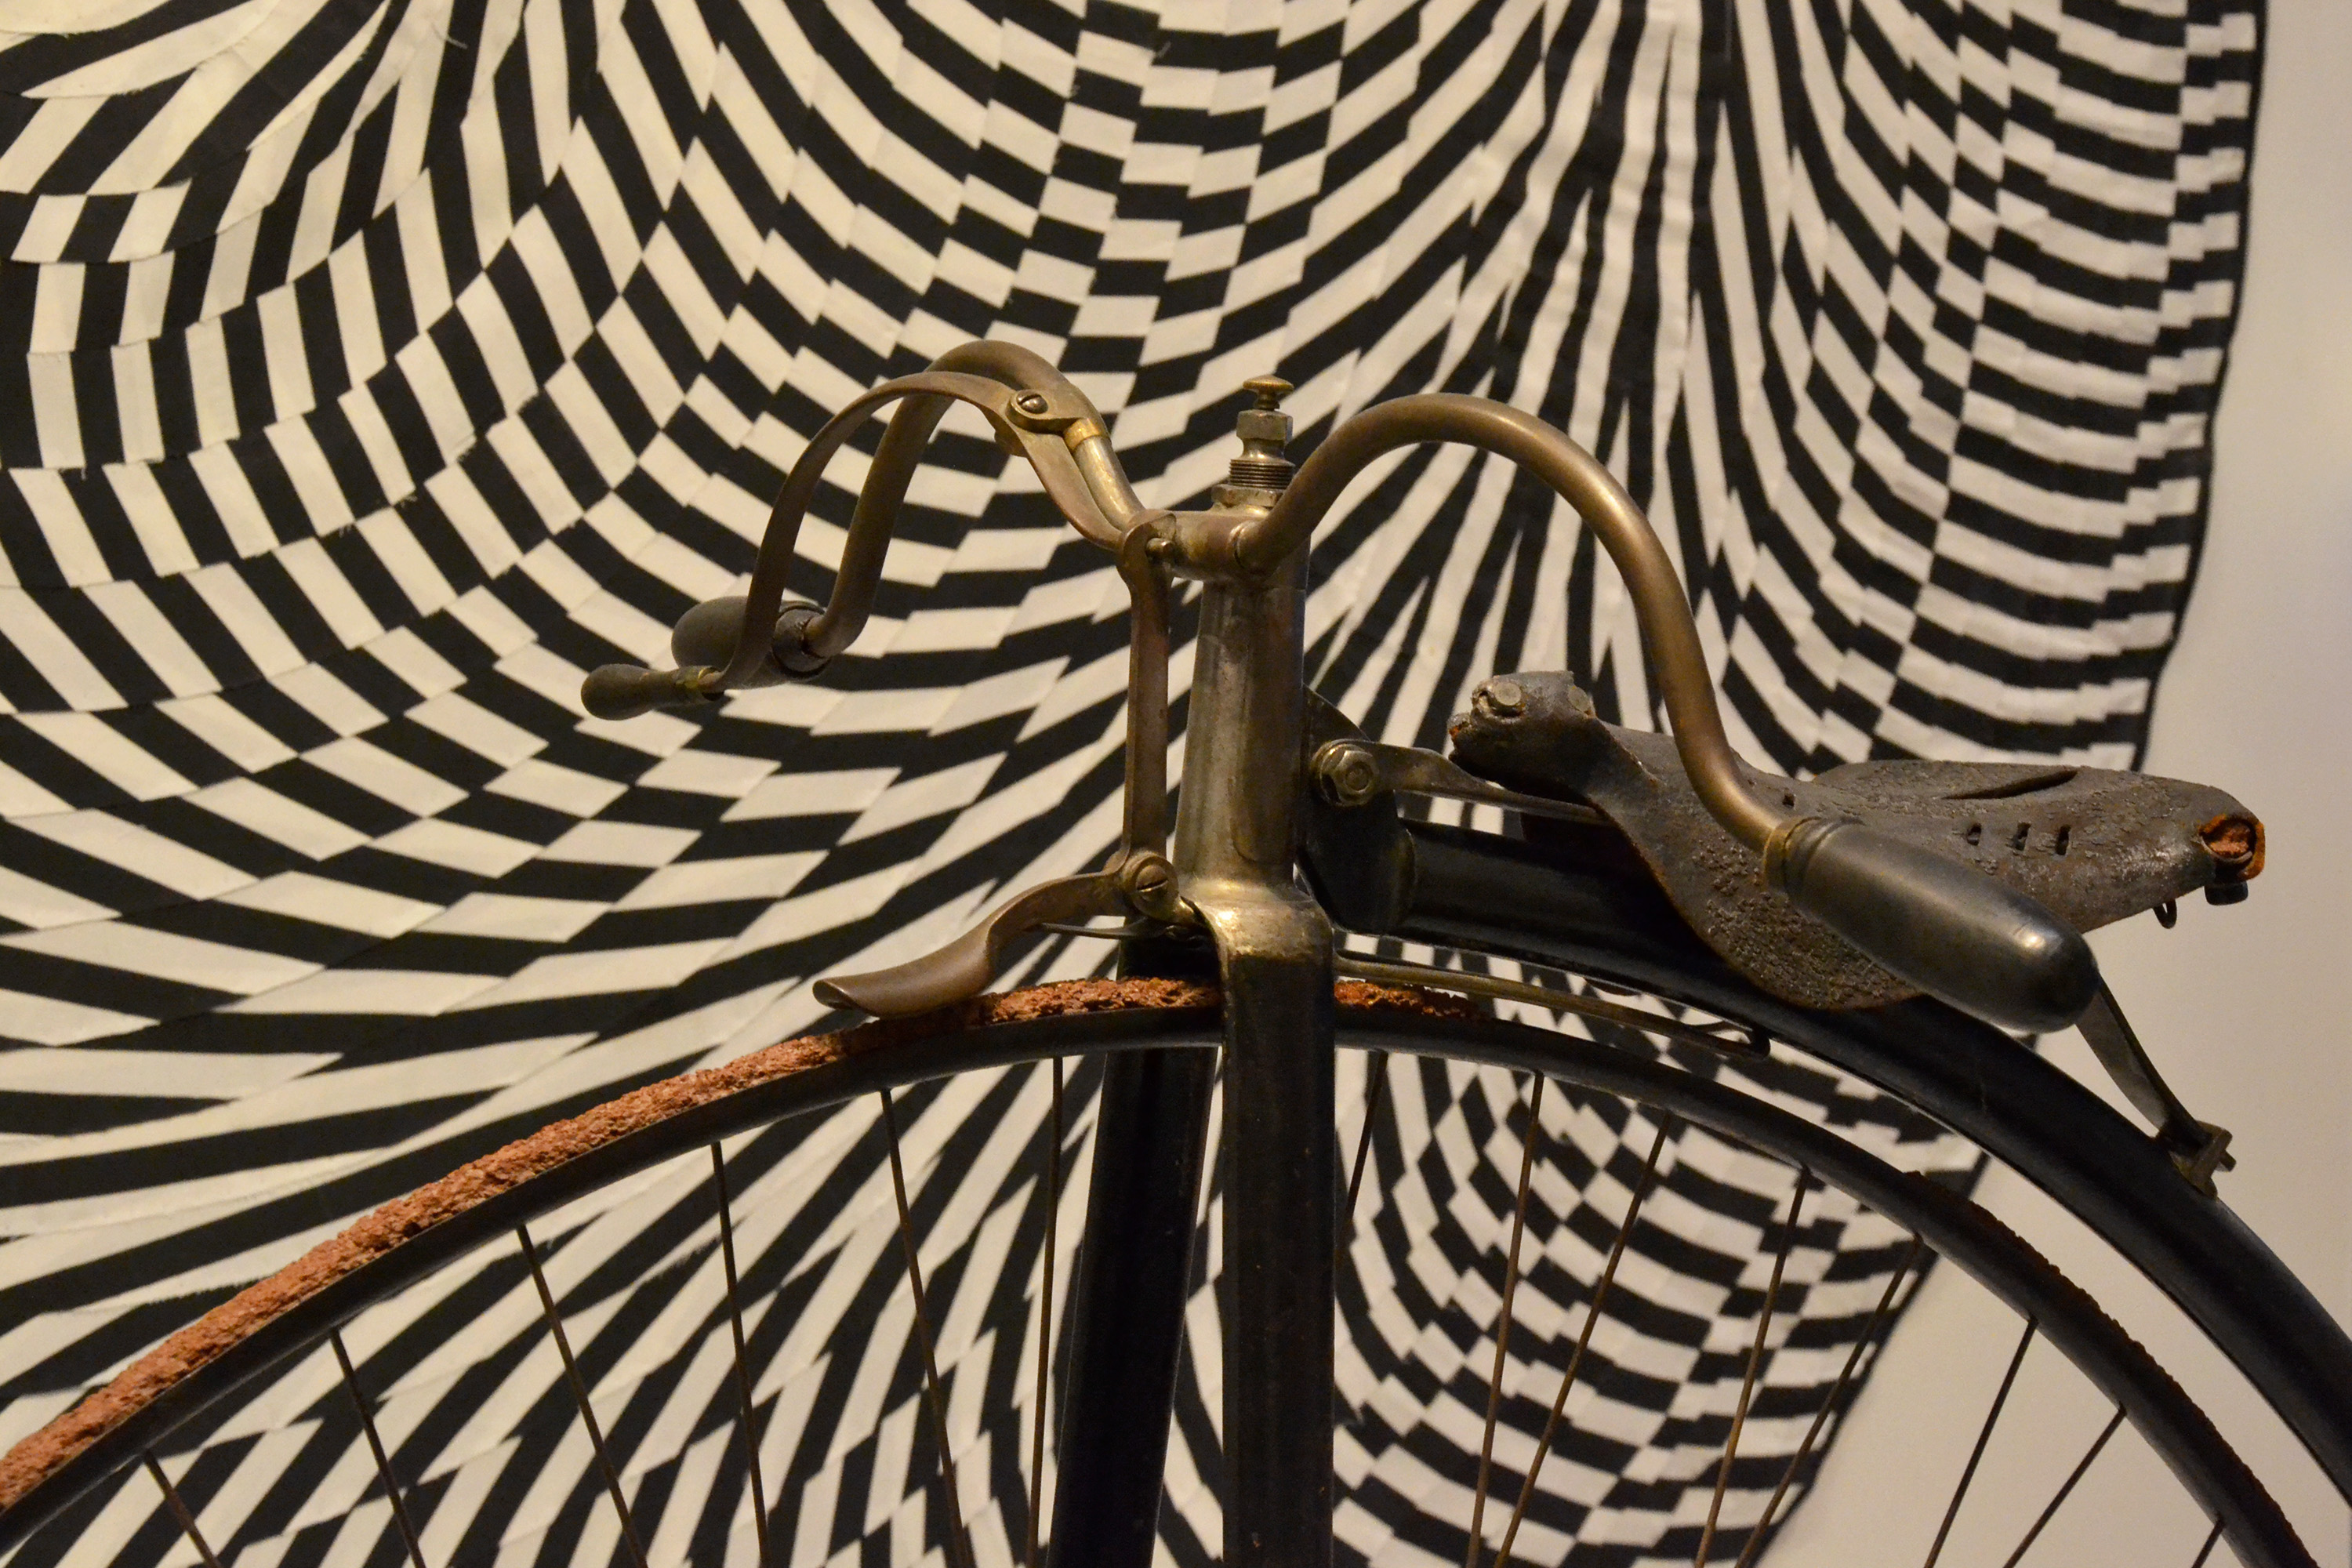 Penny-farthing detail photo